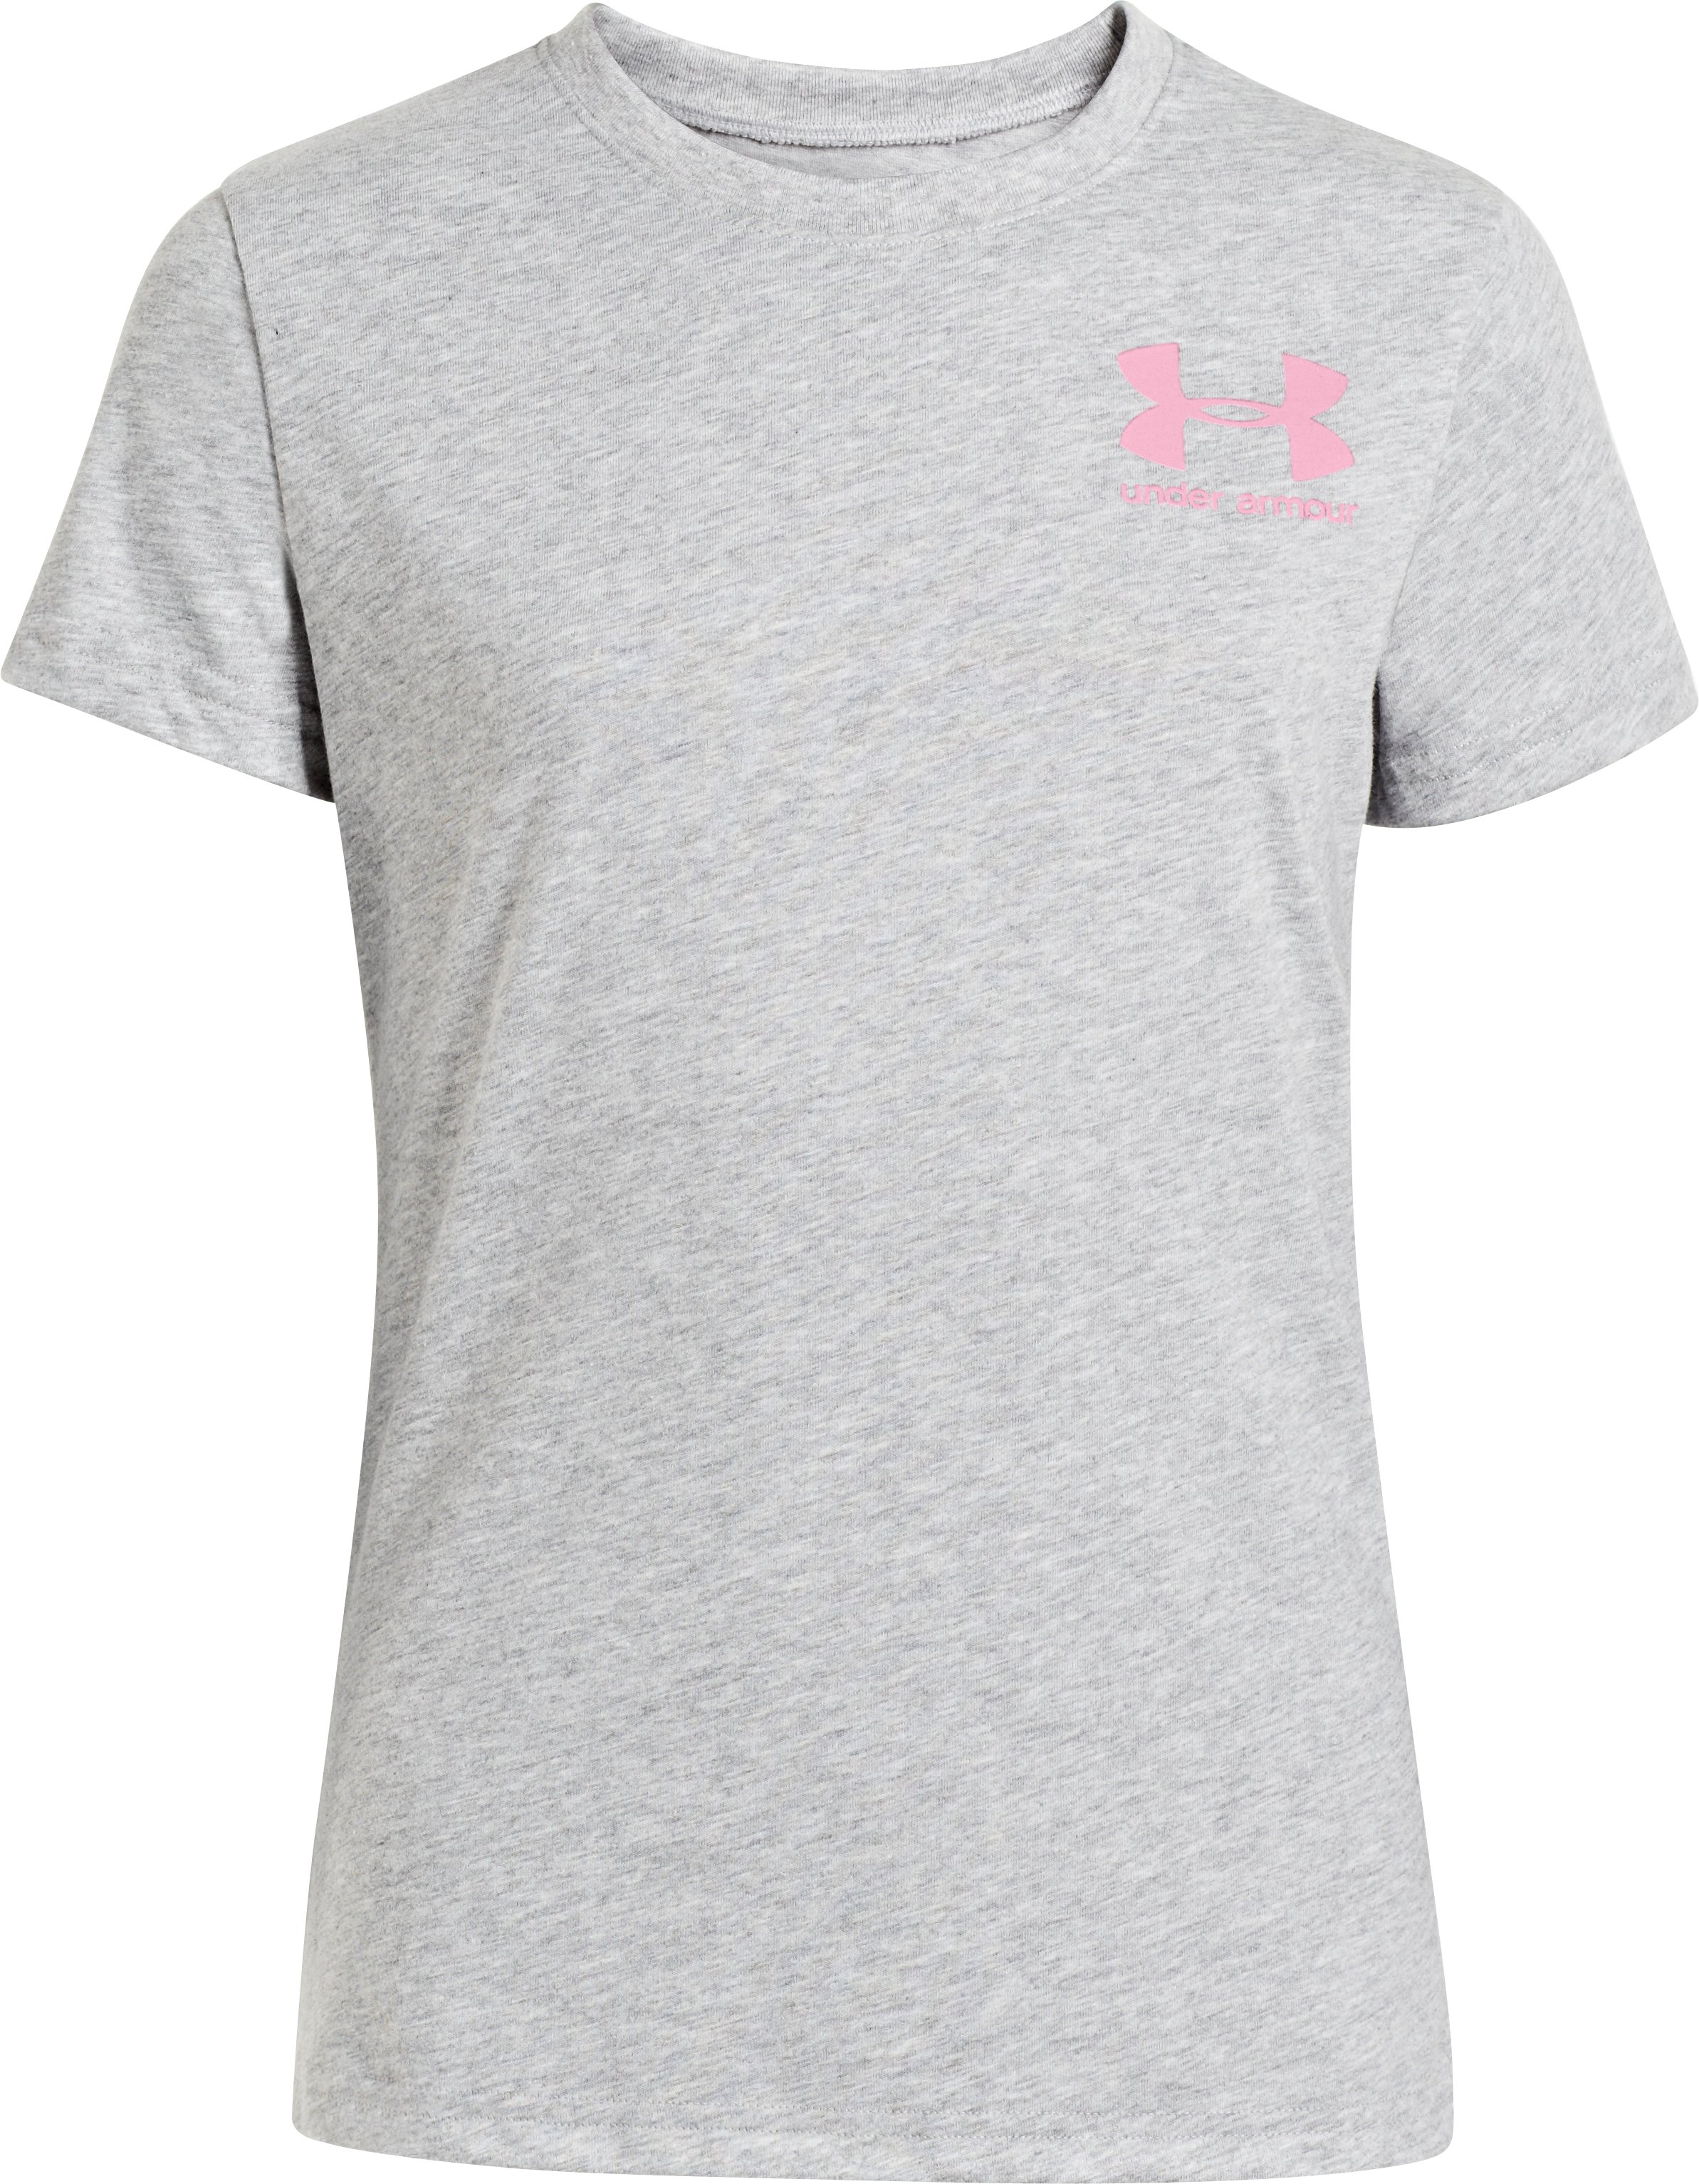 Girls' UA Try To Keep Up Graphic T-Shirt, True Gray Heather